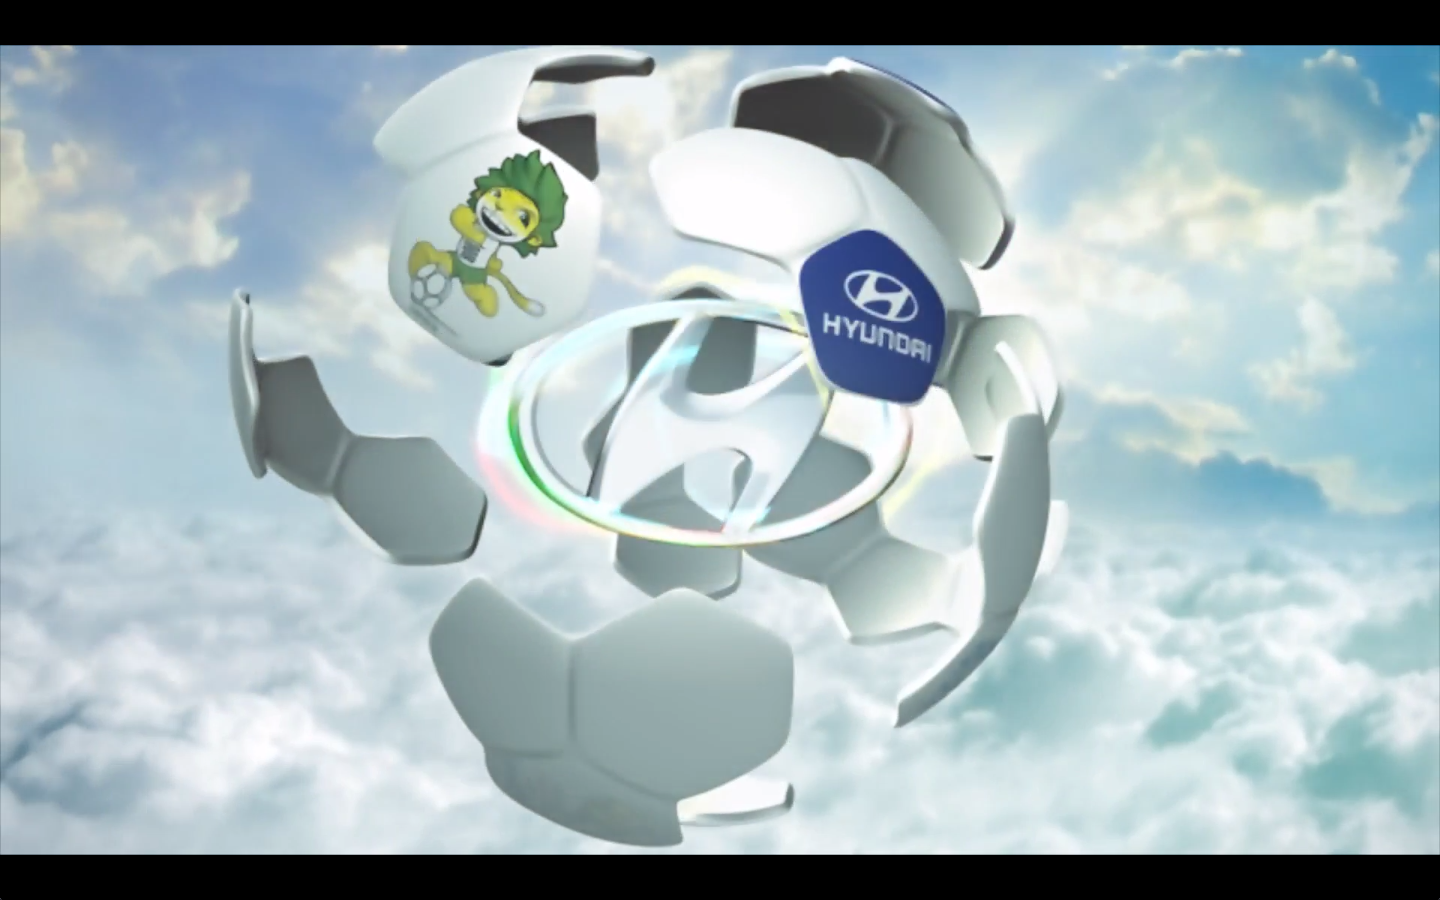 Hyundai  fanzone advert for World Cup South Africa - at Petrol   Animation, lighting and render.   [Maya]